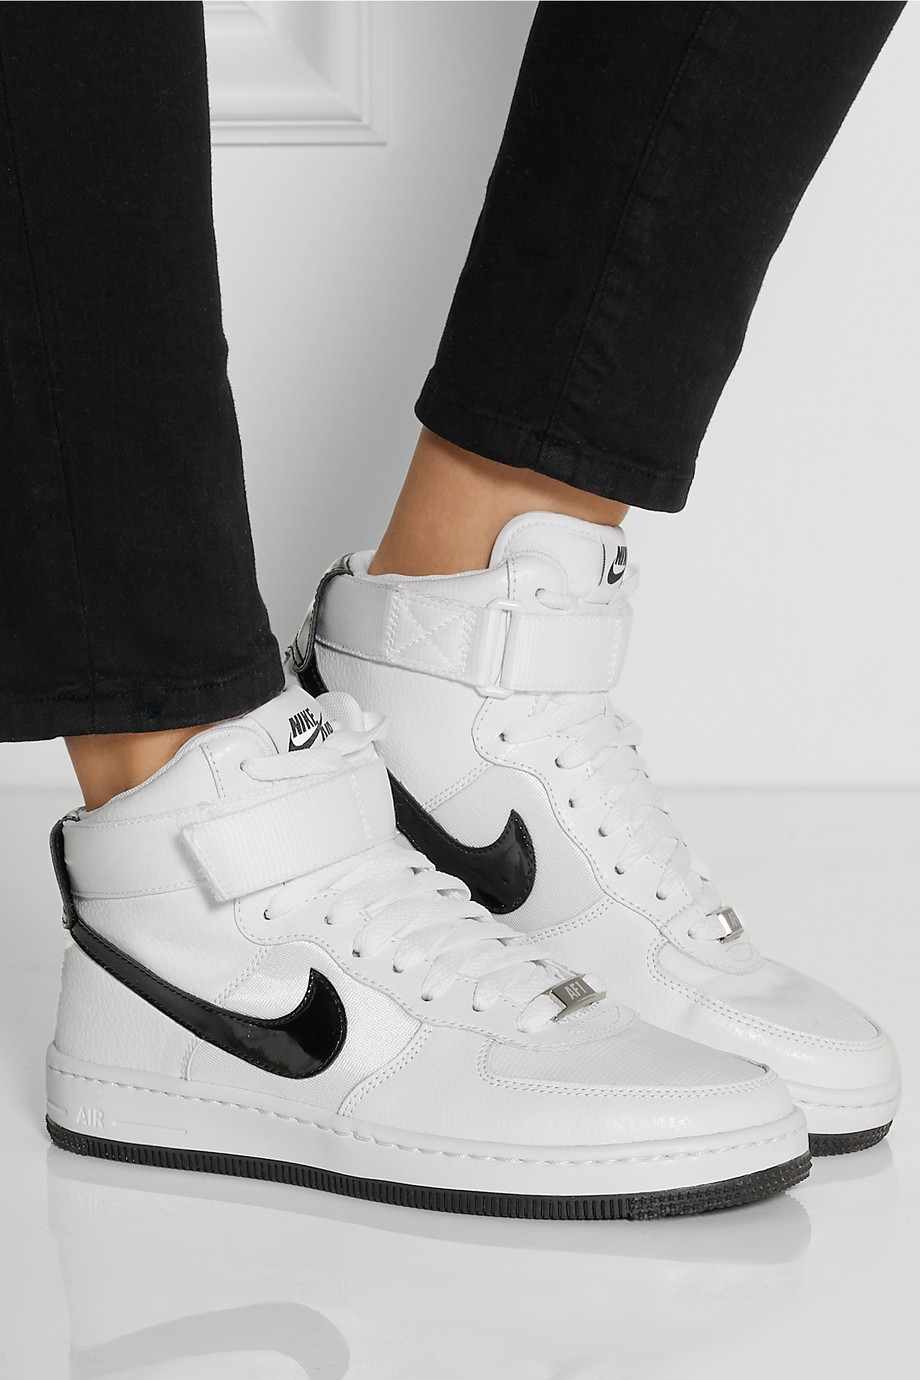 Code 1 Promo Nike Air Ultra Leather Force Cutout Sneakers CexBoWdr